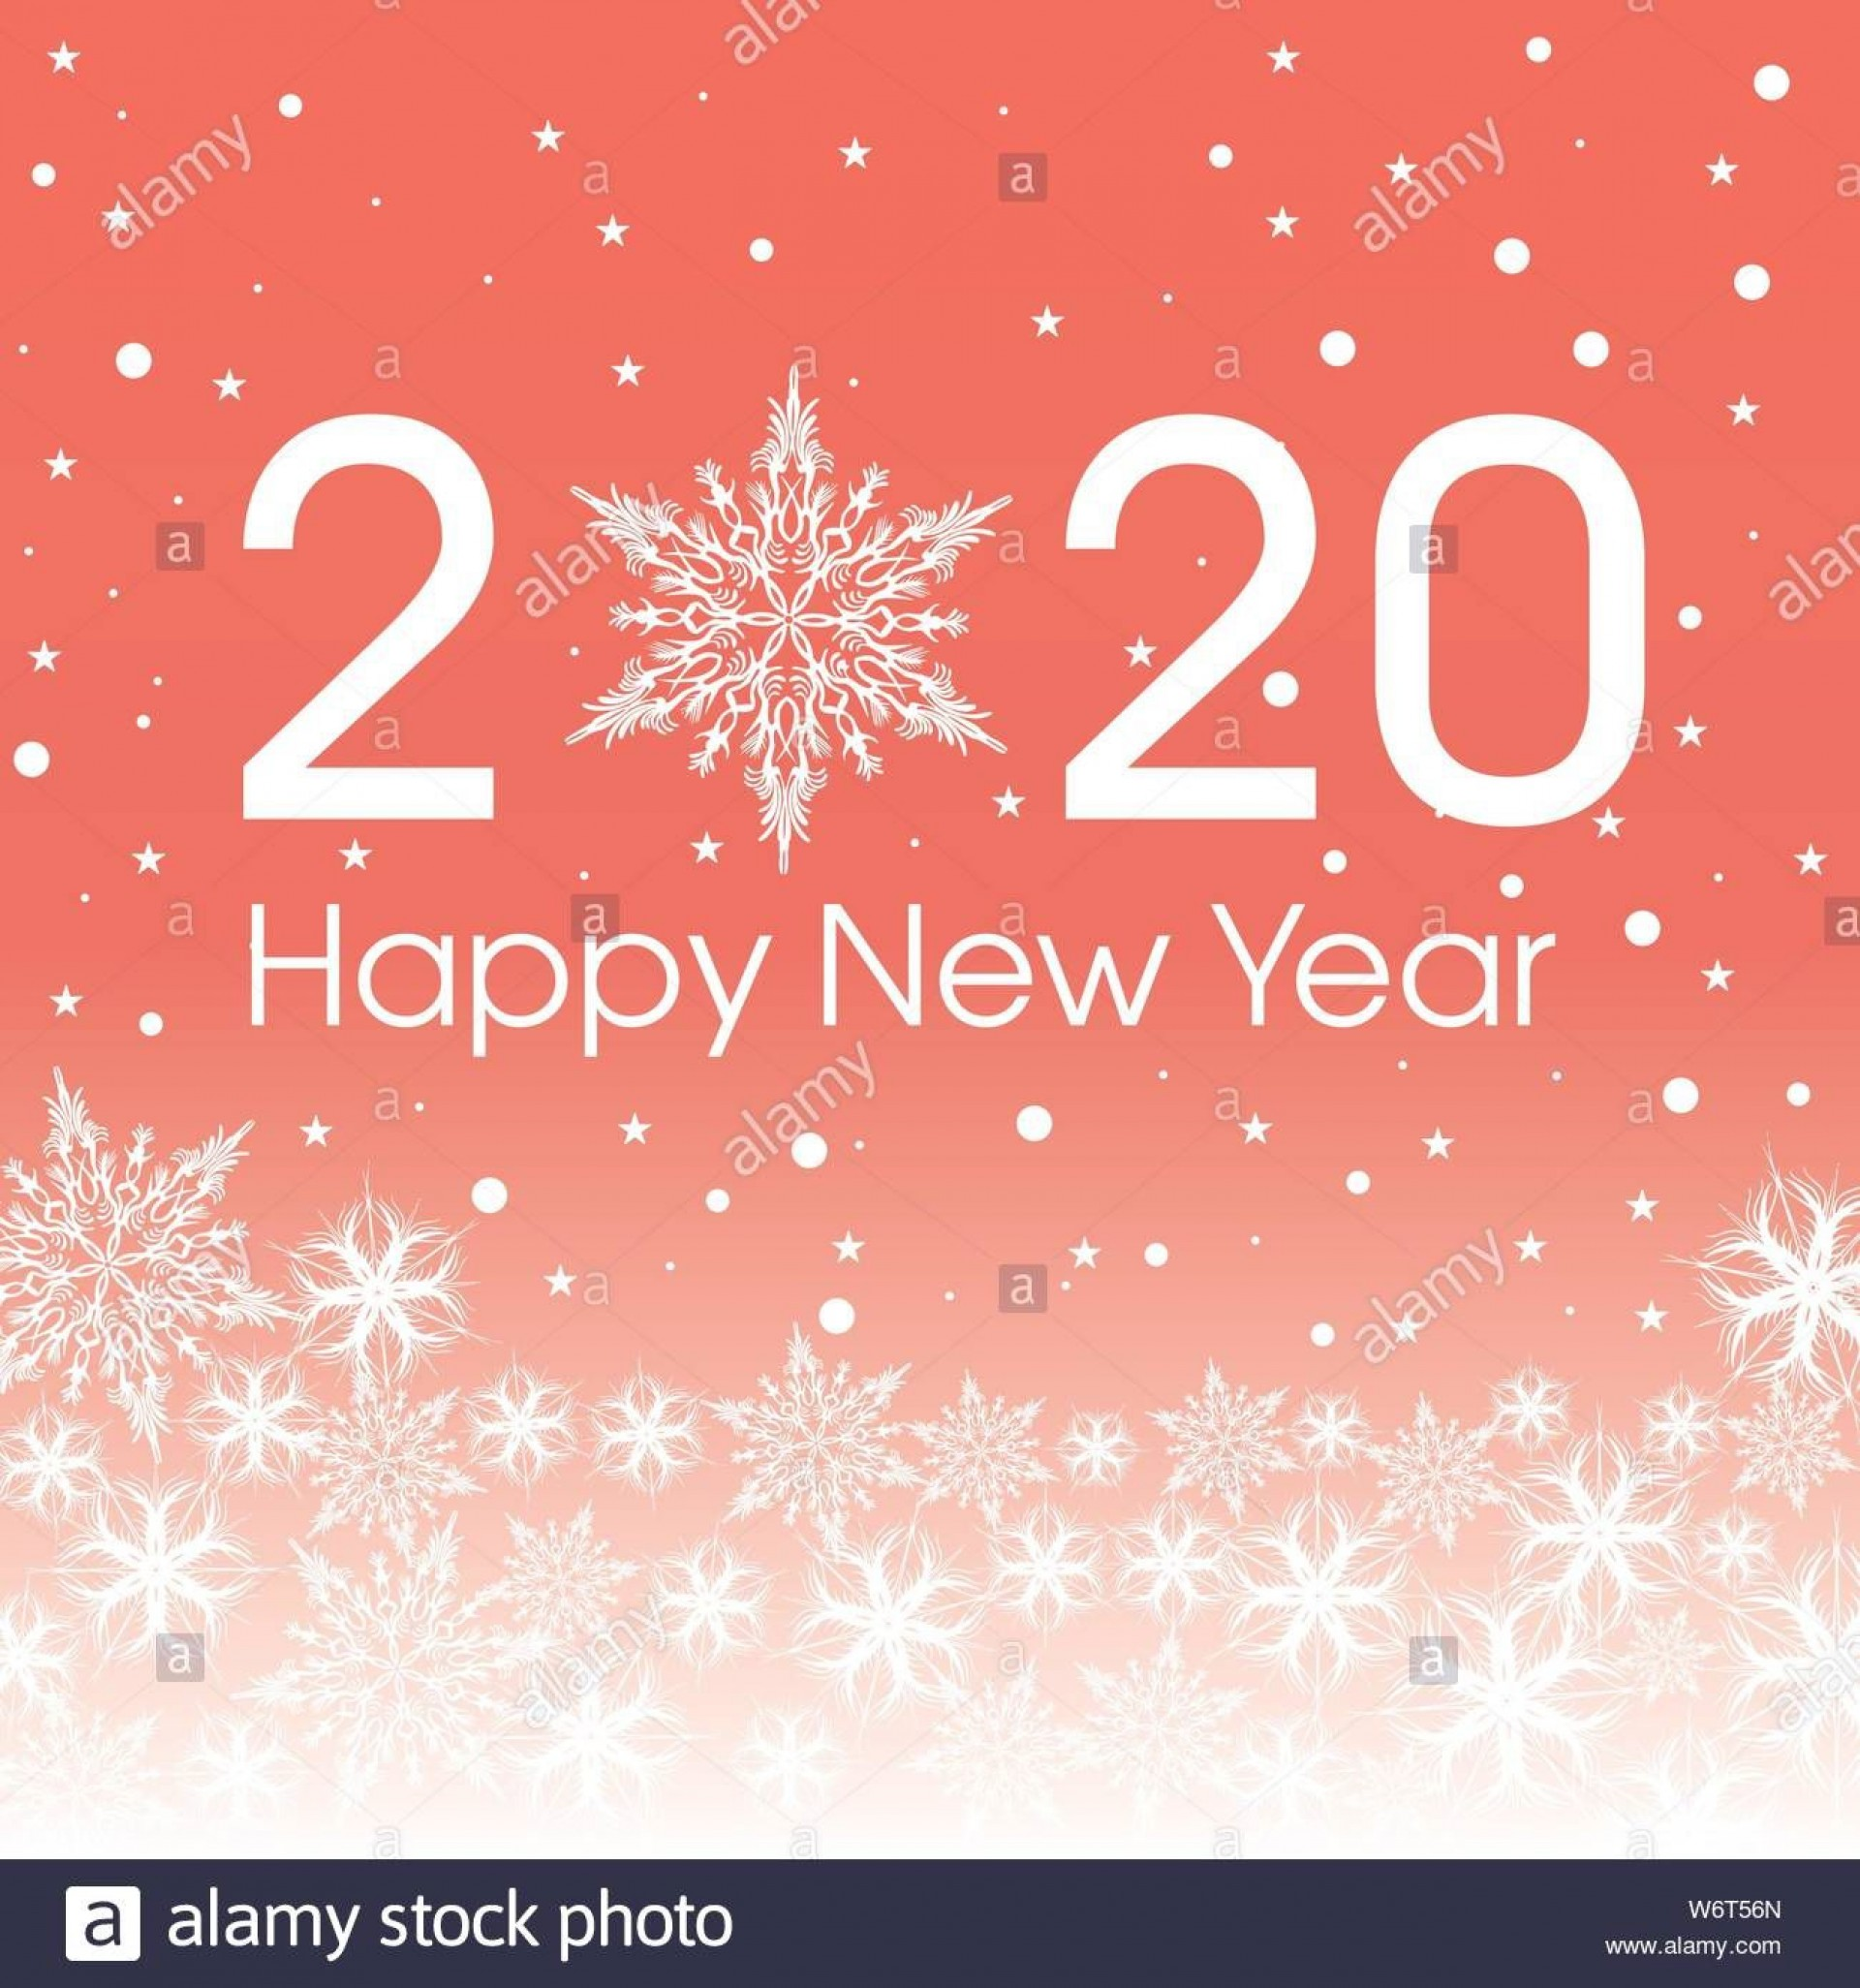 000 Shocking New Year Card Template High Definition  Happy Chinese 2020 Free1920